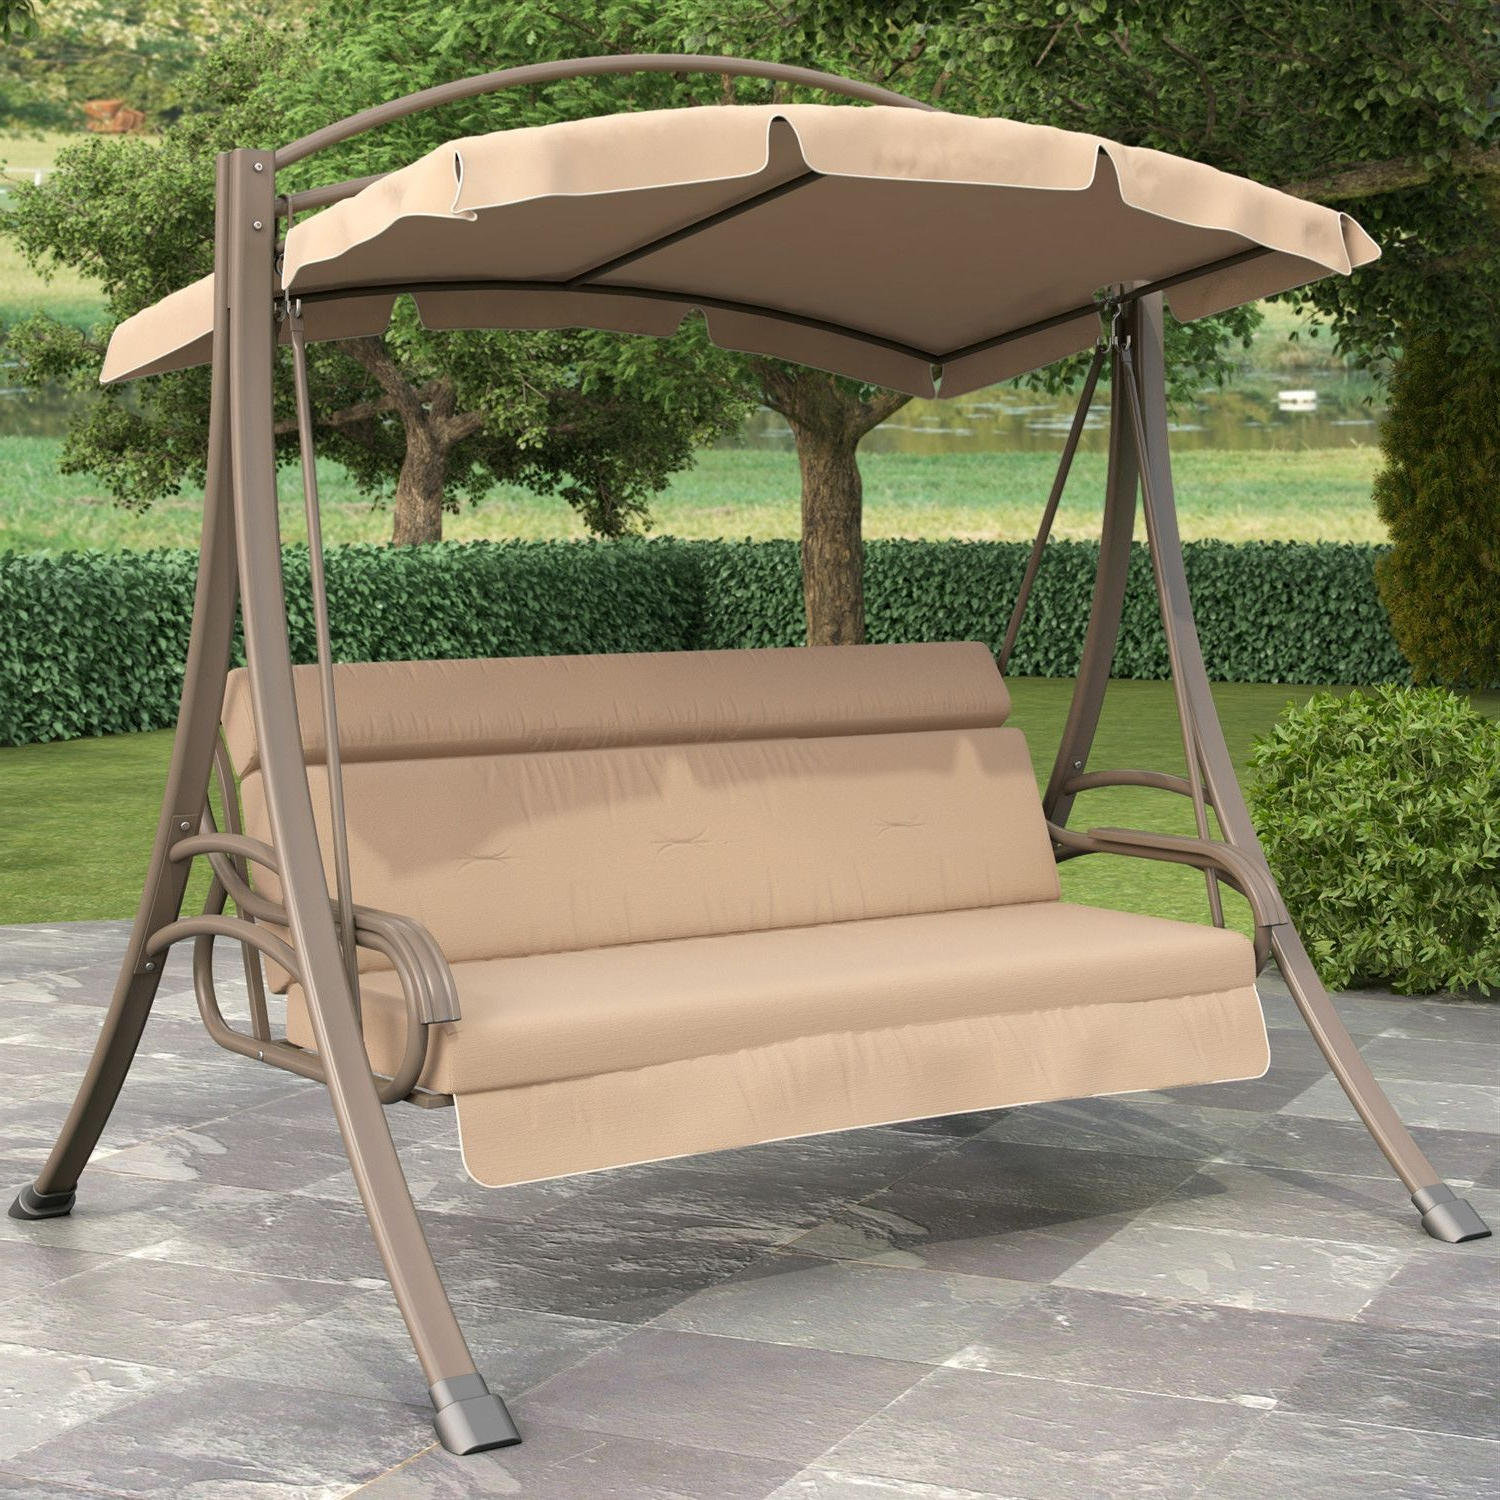 3 Person Outdoor Porch Swing With Canopy In Beige Tan Brown In Trendy 3 Person Brown Steel Outdoor Swings (Gallery 15 of 25)